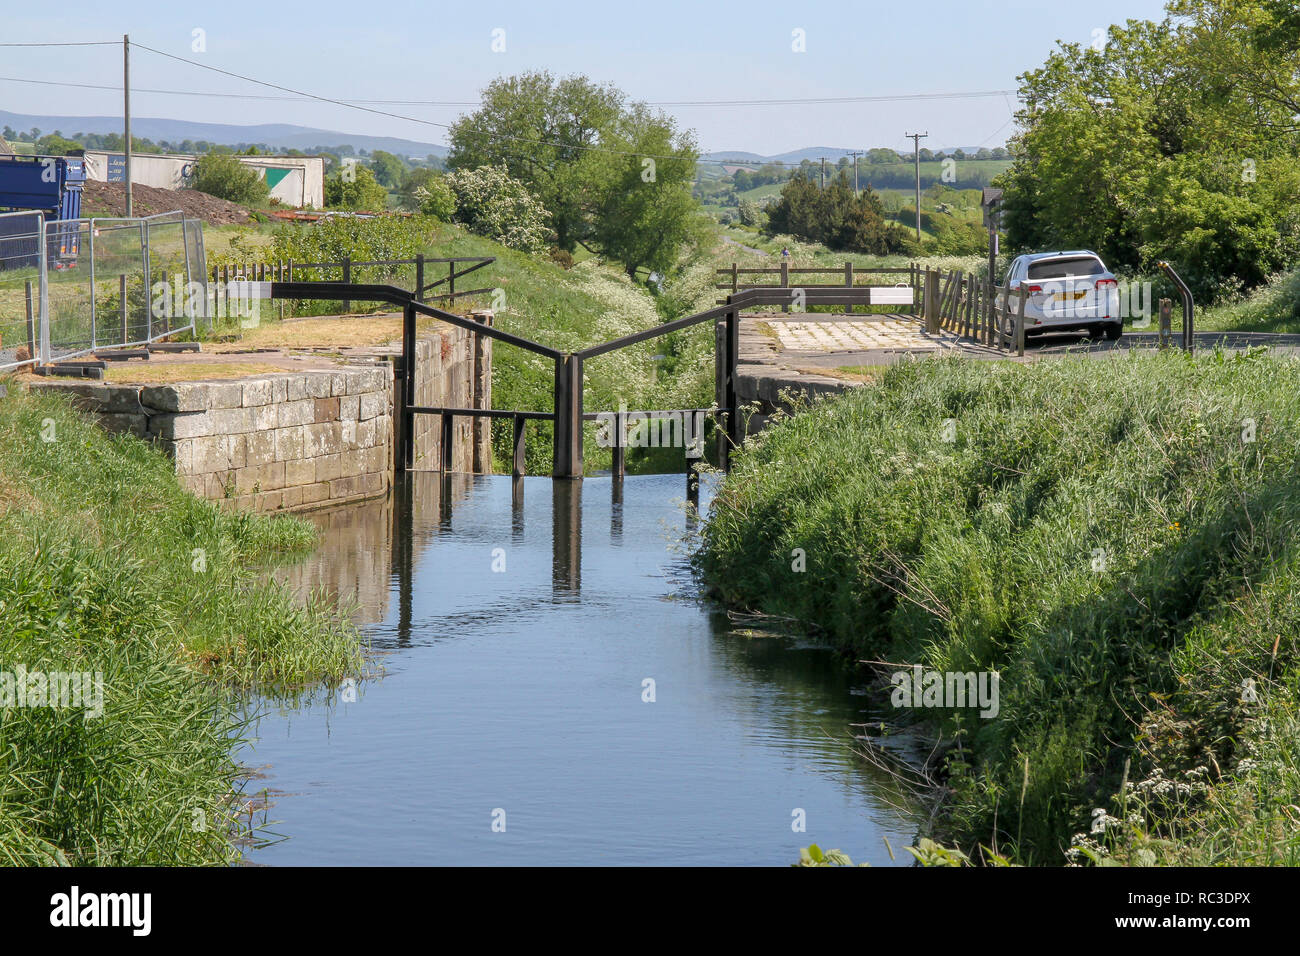 Lock on the former Newry Canal at Poyntzpass, County Down, Northern Ireland. - Stock Image